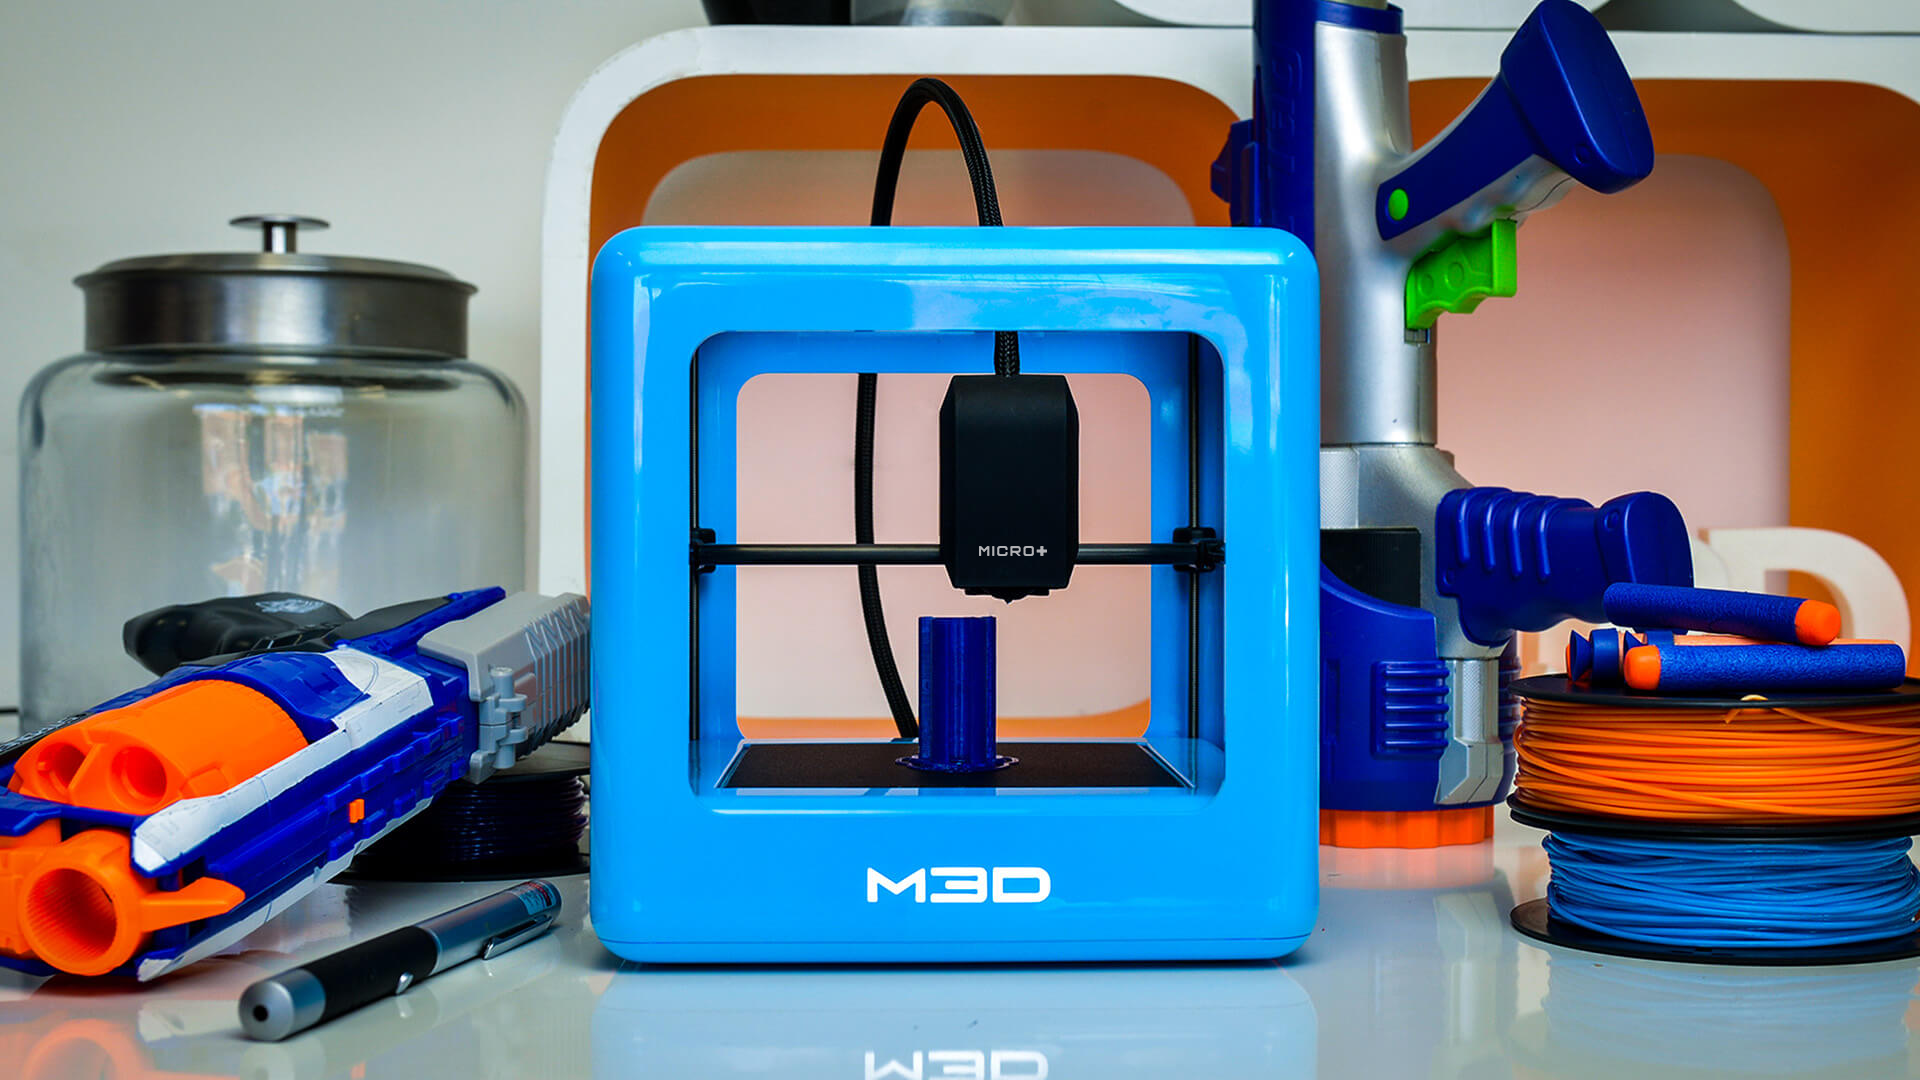 M3D Micro+ 3D Printer Description - 3D Printers Depot